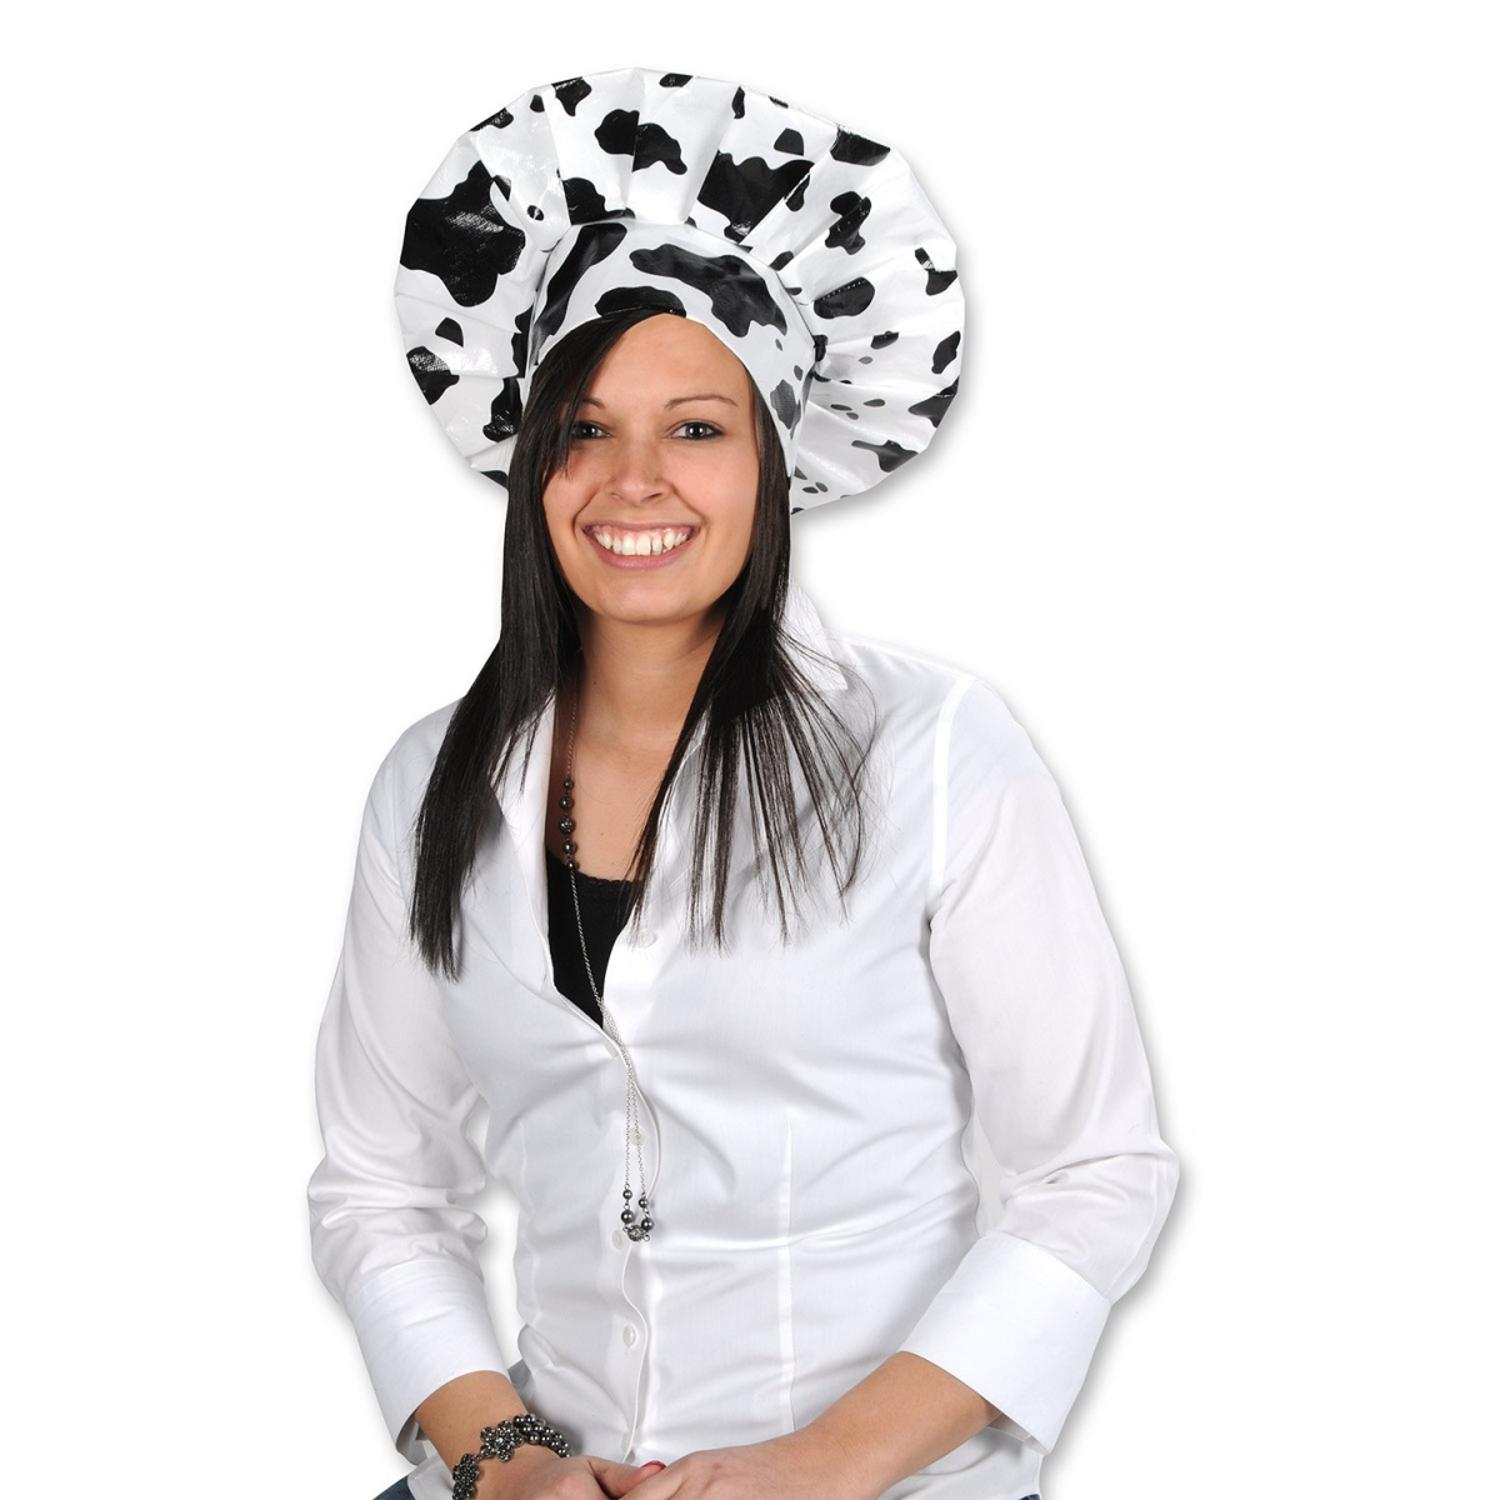 Club Pack of 12 Black and White Cow Spots Print Chef's Toque Hats